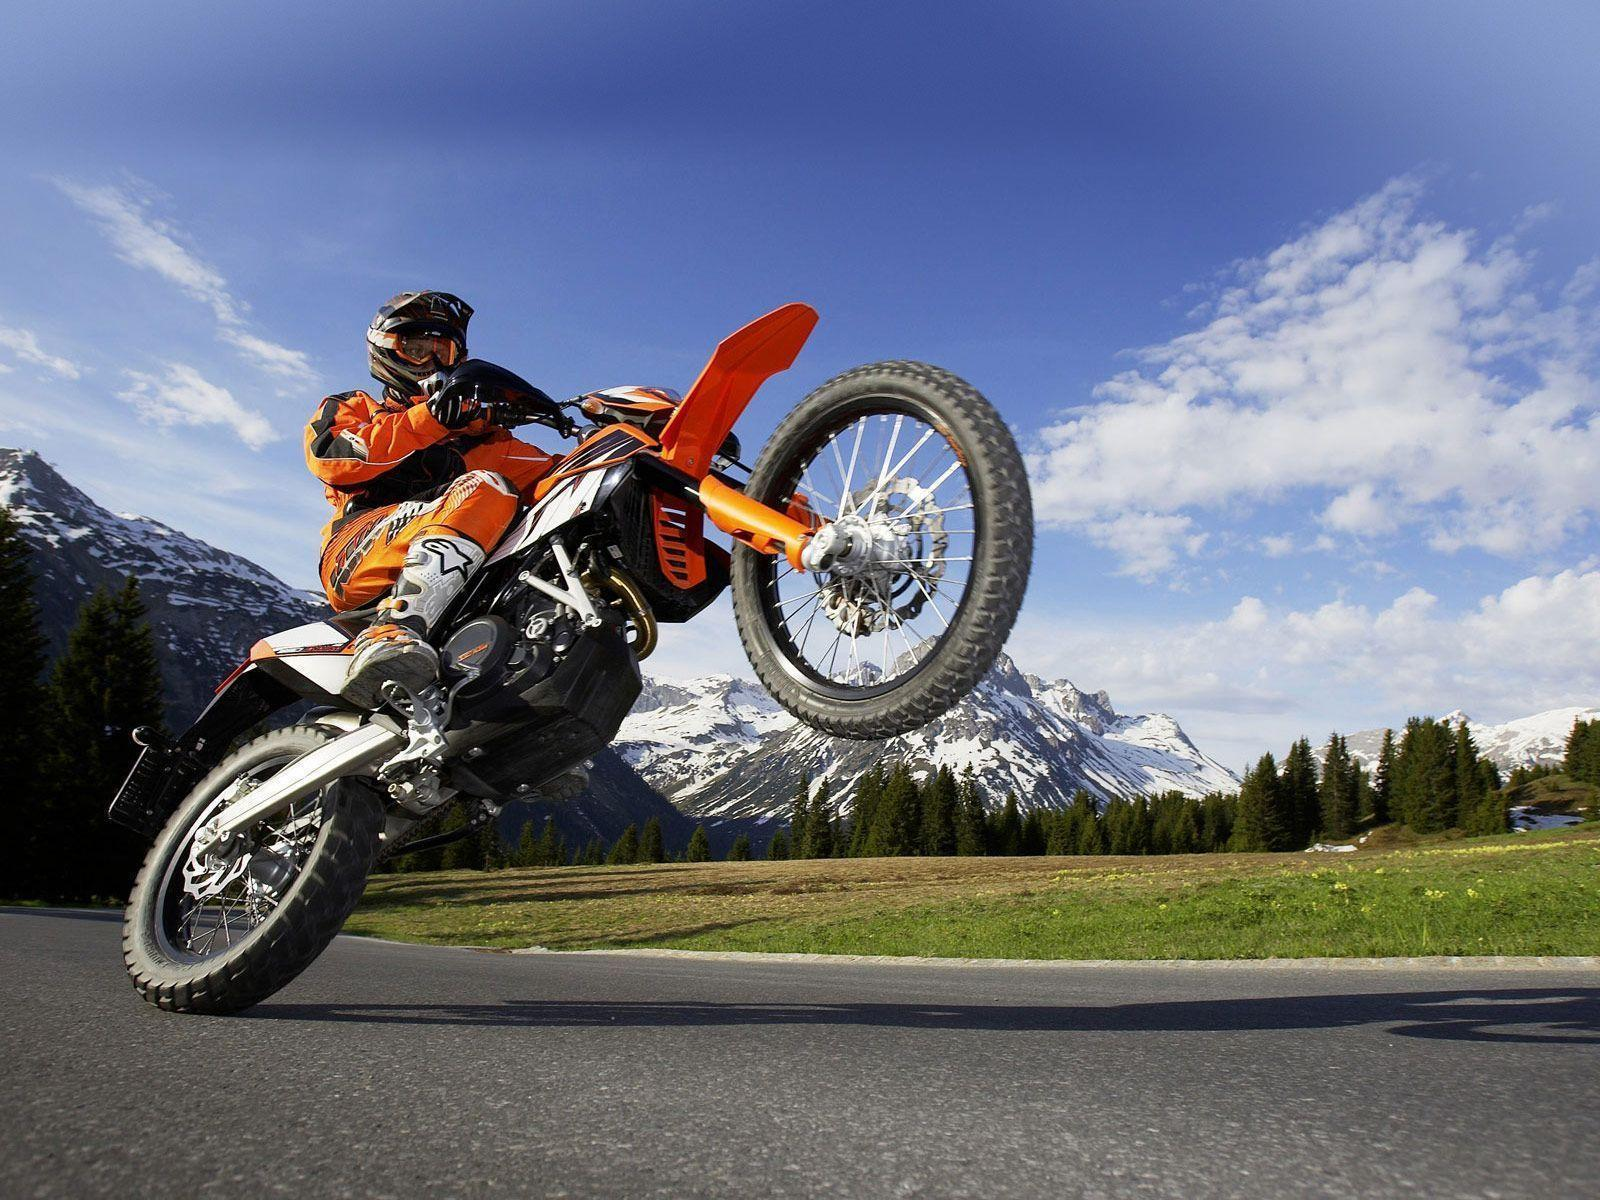 Ktm Wallpapers: Free Download Ktm Exc Review Hd Wallpaper #4153 ...